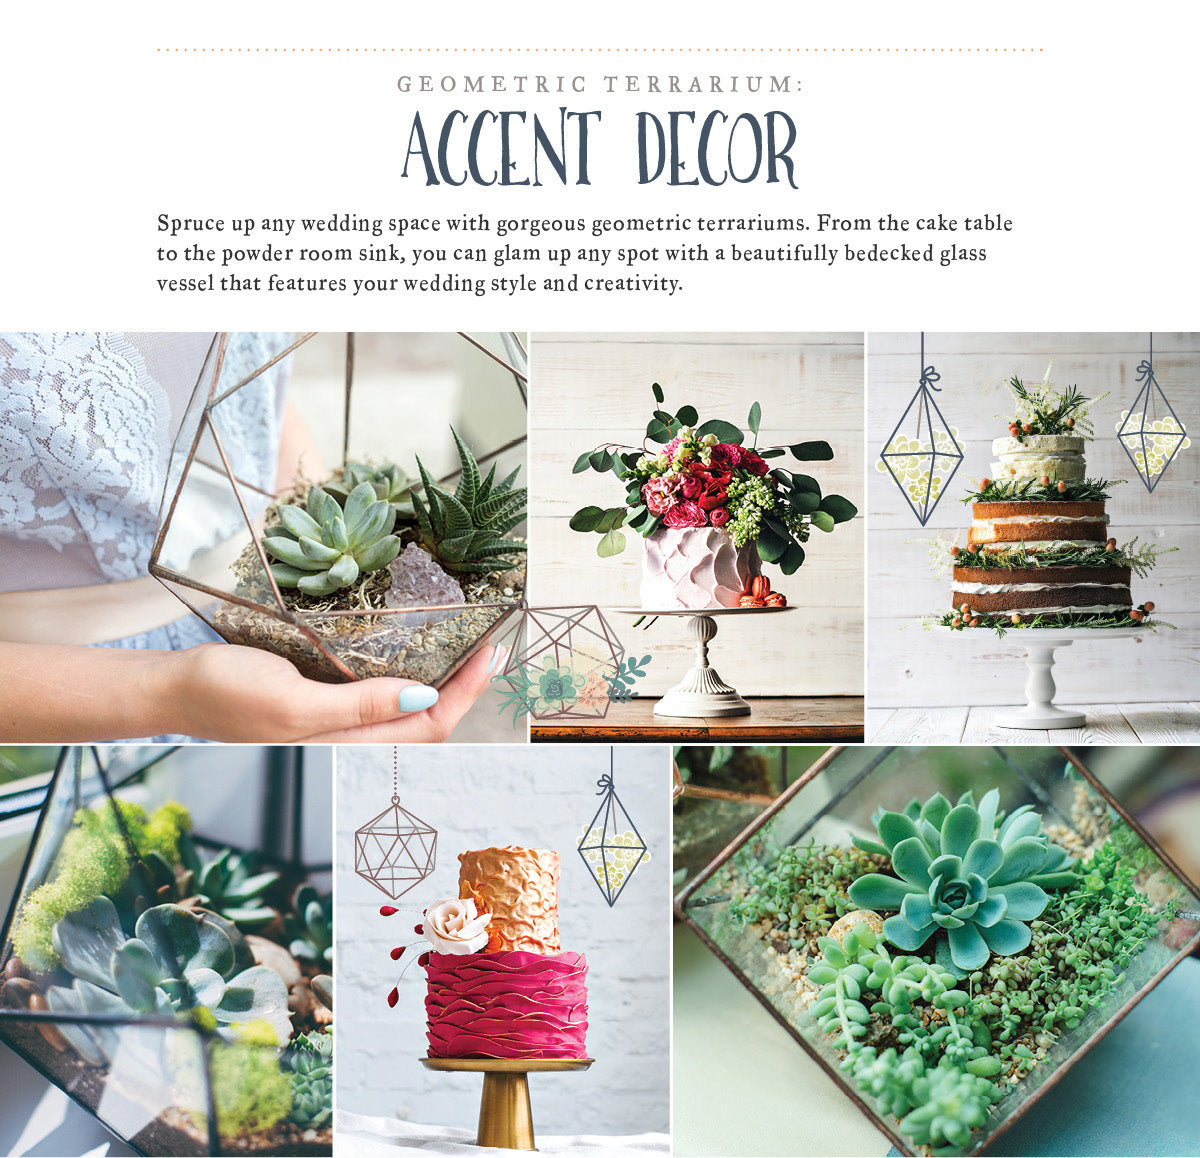 Geometric Terrarium: Accent Decor